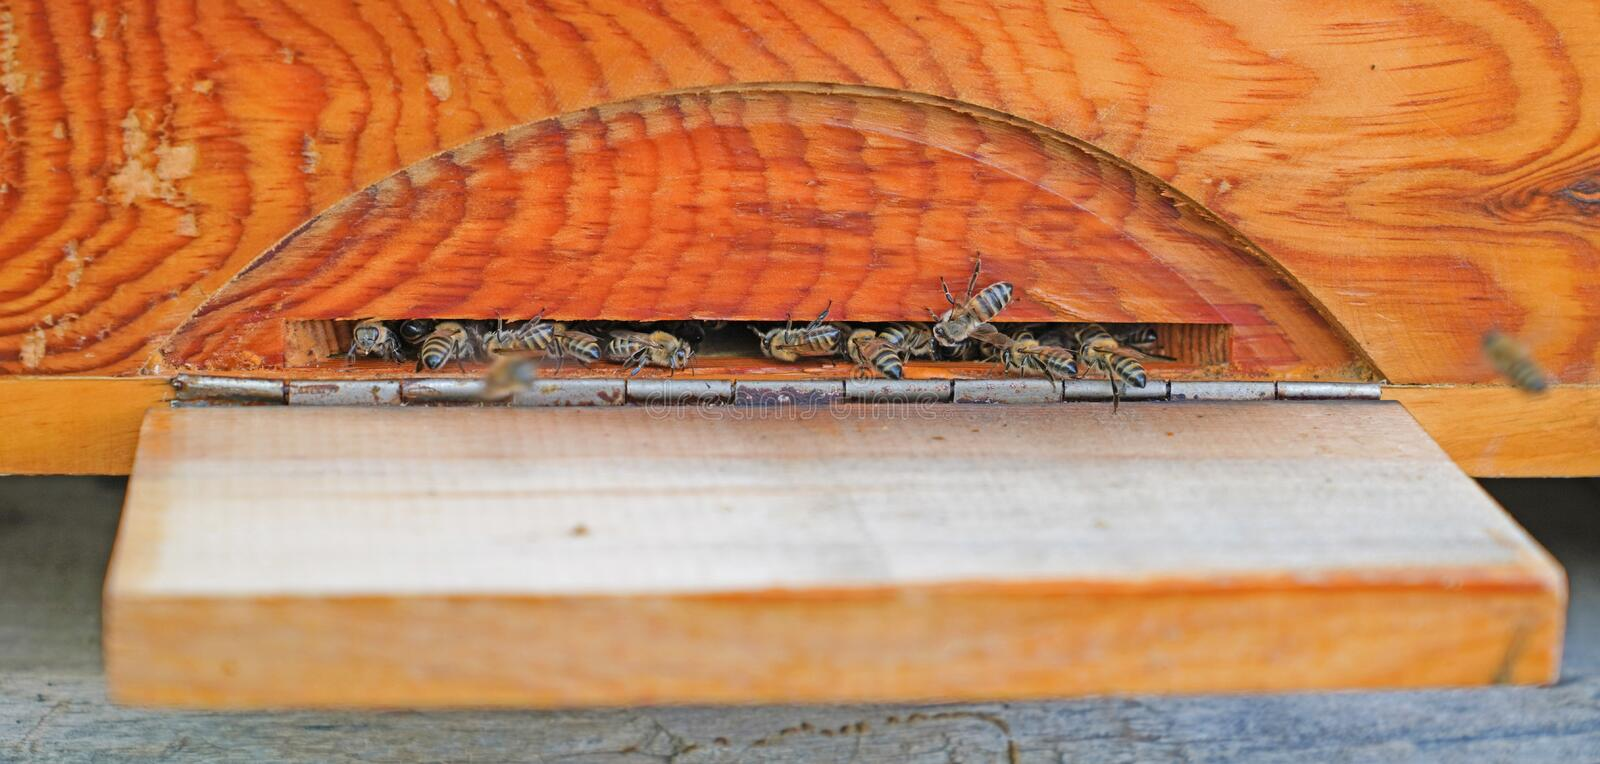 Bees entering the hive which is made of pine tree royalty free stock photo